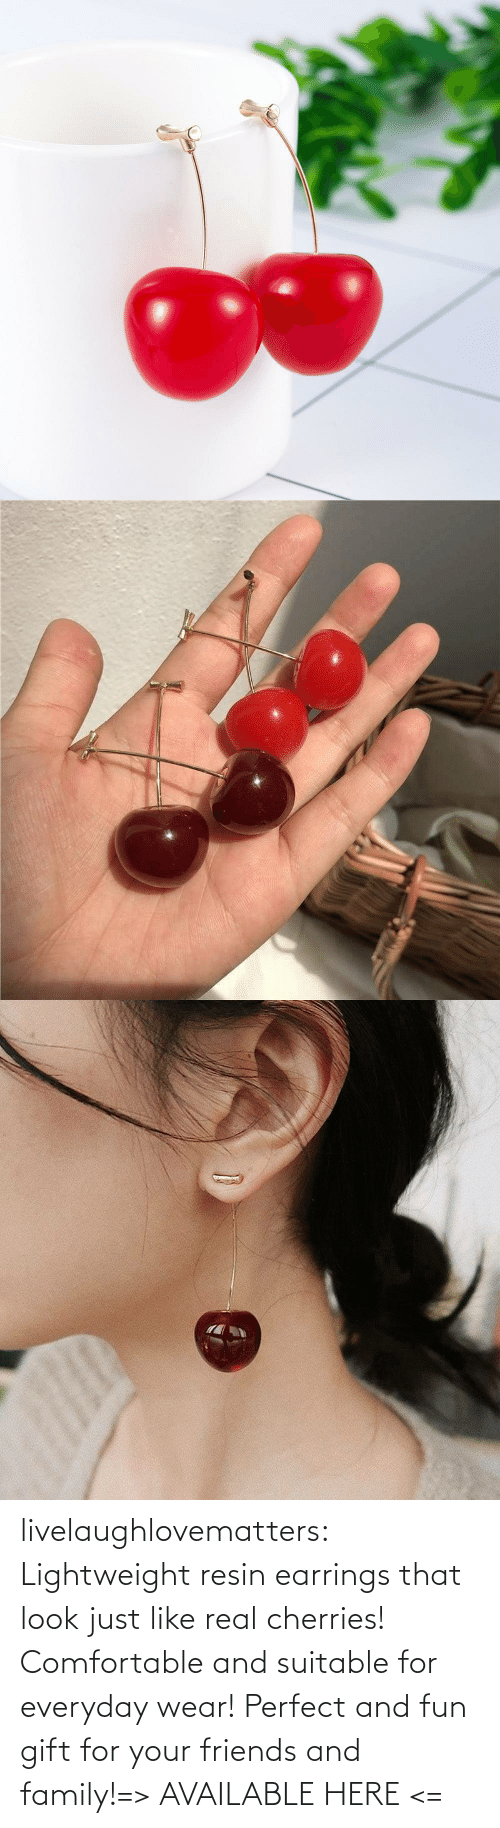 Lightweight: livelaughlovematters:  Lightweight resin earrings that look just like real cherries! Comfortable and suitable for everyday wear! Perfect and fun gift for your friends and family!=> AVAILABLE HERE <=